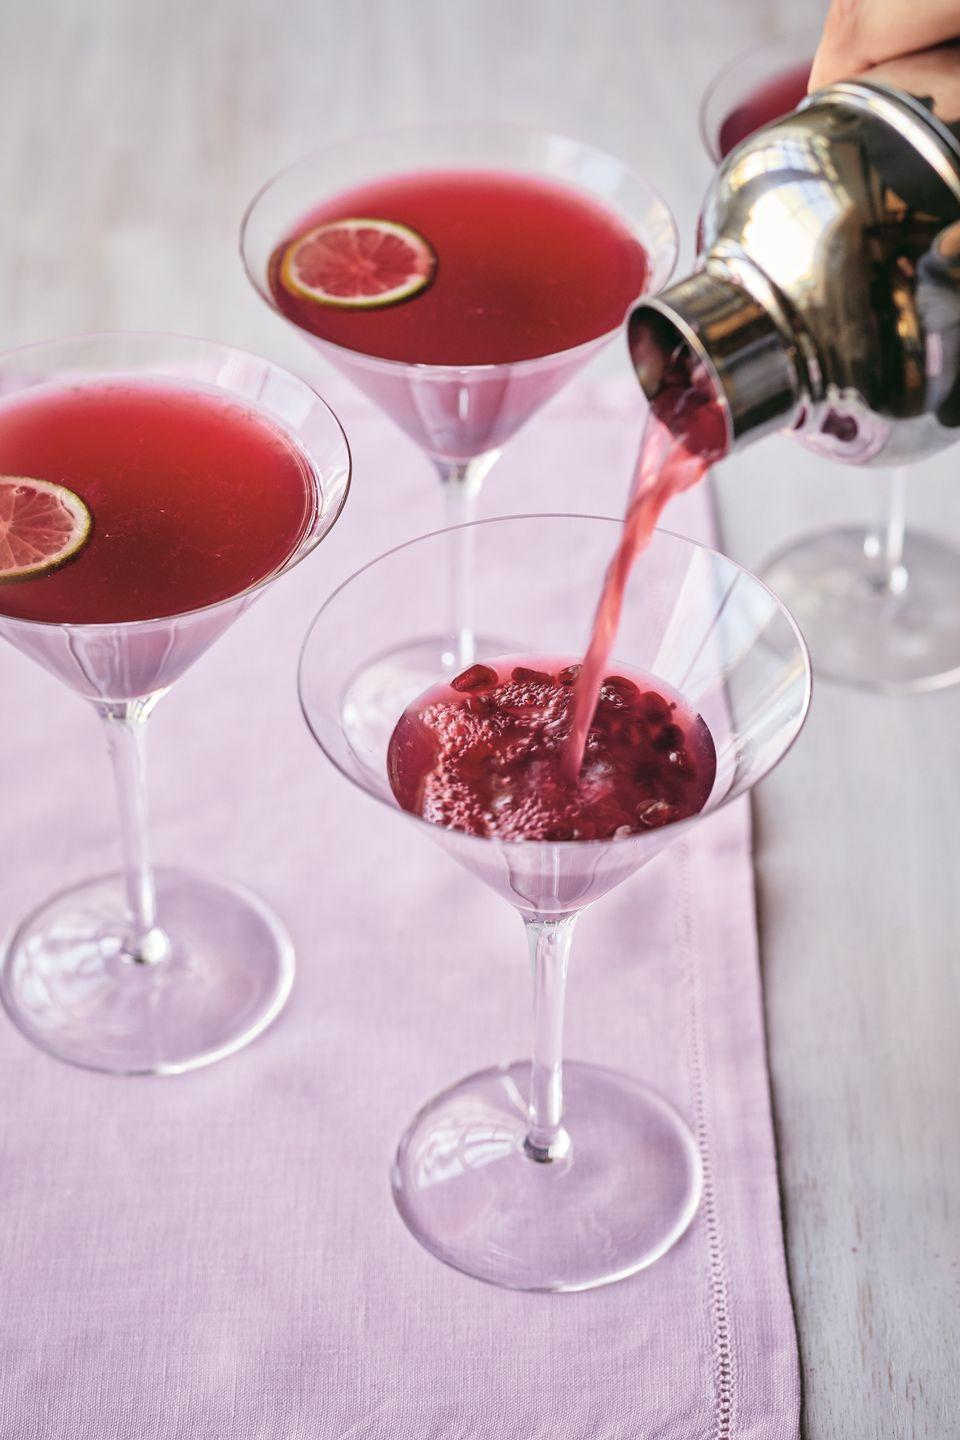 "<p>""What is it about drinking a cocktail in a martini glass that makes us feel so glamorous—like Cary Grant and Grace Kelly?"" Garten writes in her new cookbook, <a href=""https://www.amazon.com/Modern-Comfort-Food-Barefoot-Contessa/dp/0804187061/ref=sr_1_1?tag=veranda_auto-append-20&ascsubtag=[artid